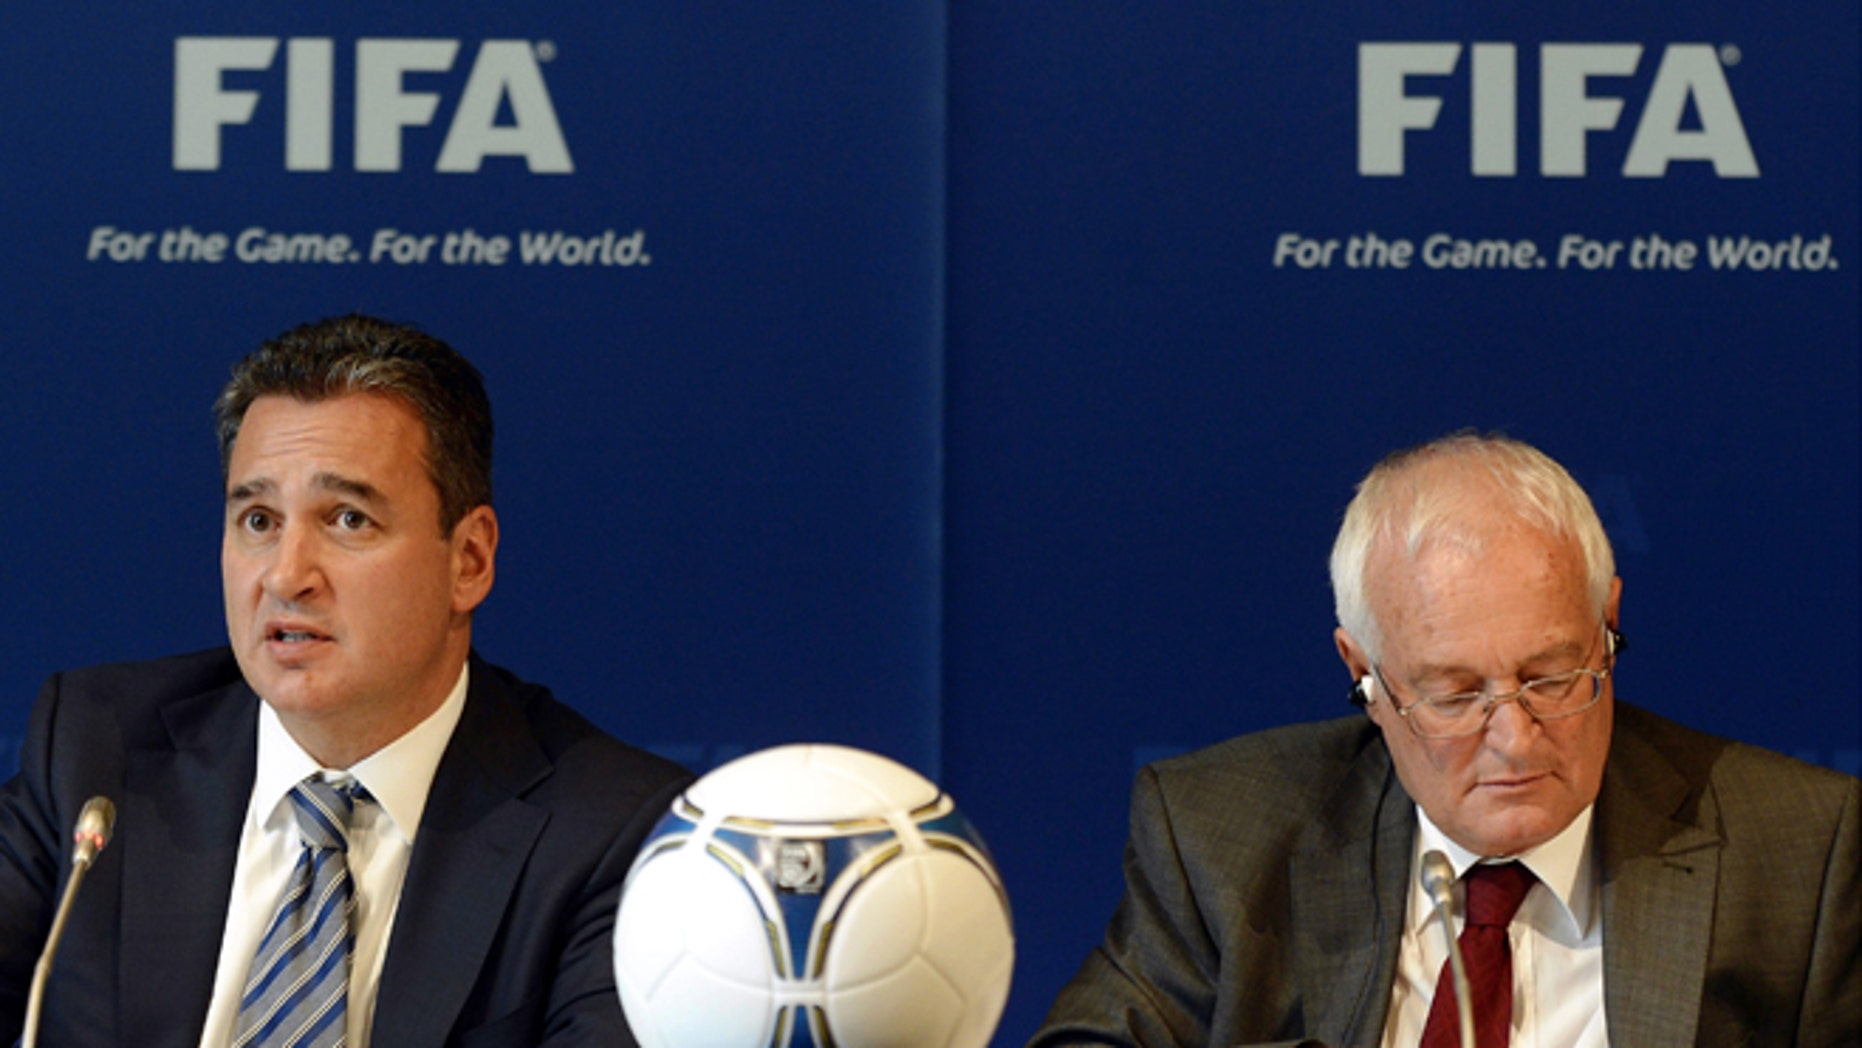 FILE - In this Friday, July 27, 2012 file photo, Chairmen of the two chambers of the new FIFA Ethics Committee Michael Garcia, left, from the US and Joachim Eckert, right, from Germany attend a press conference, at the Home of FIFA in Zurich, Switzerland. FIFA ethics judge Joachim Eckert is unlikely to reach final decisions in the 2018 and 2022 World Cup bidding corruption probe until early next year.  FIFA has cleared Russia and Qatar of any wrongdoing in their winning bids for the next two World Cups. German judge Joachim Eckert formally closed FIFAs probe into the 2018 and 2022 World Cup bidding contests on Thursday, almost four years after the vote by the governing body's scandal-tainted executive committee. Eckert noted wrongdoing among the 11 bidding nations in a 42-page summary of FIFA prosecutor Michael Garcias investigations. (AP Photo/Keystone, Walter Bieri, File)